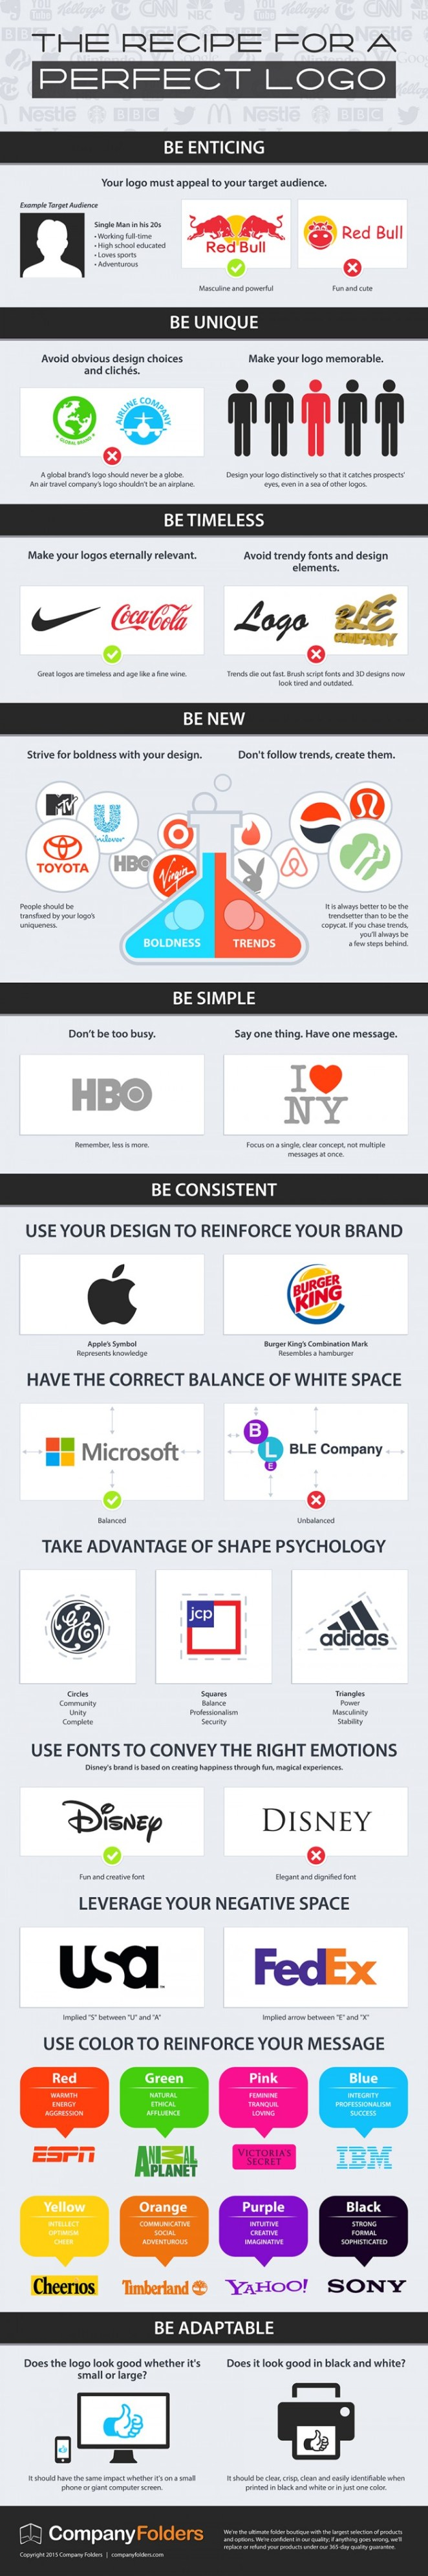 The Recipe for a Perfect Logo - Infographic - Design Mash